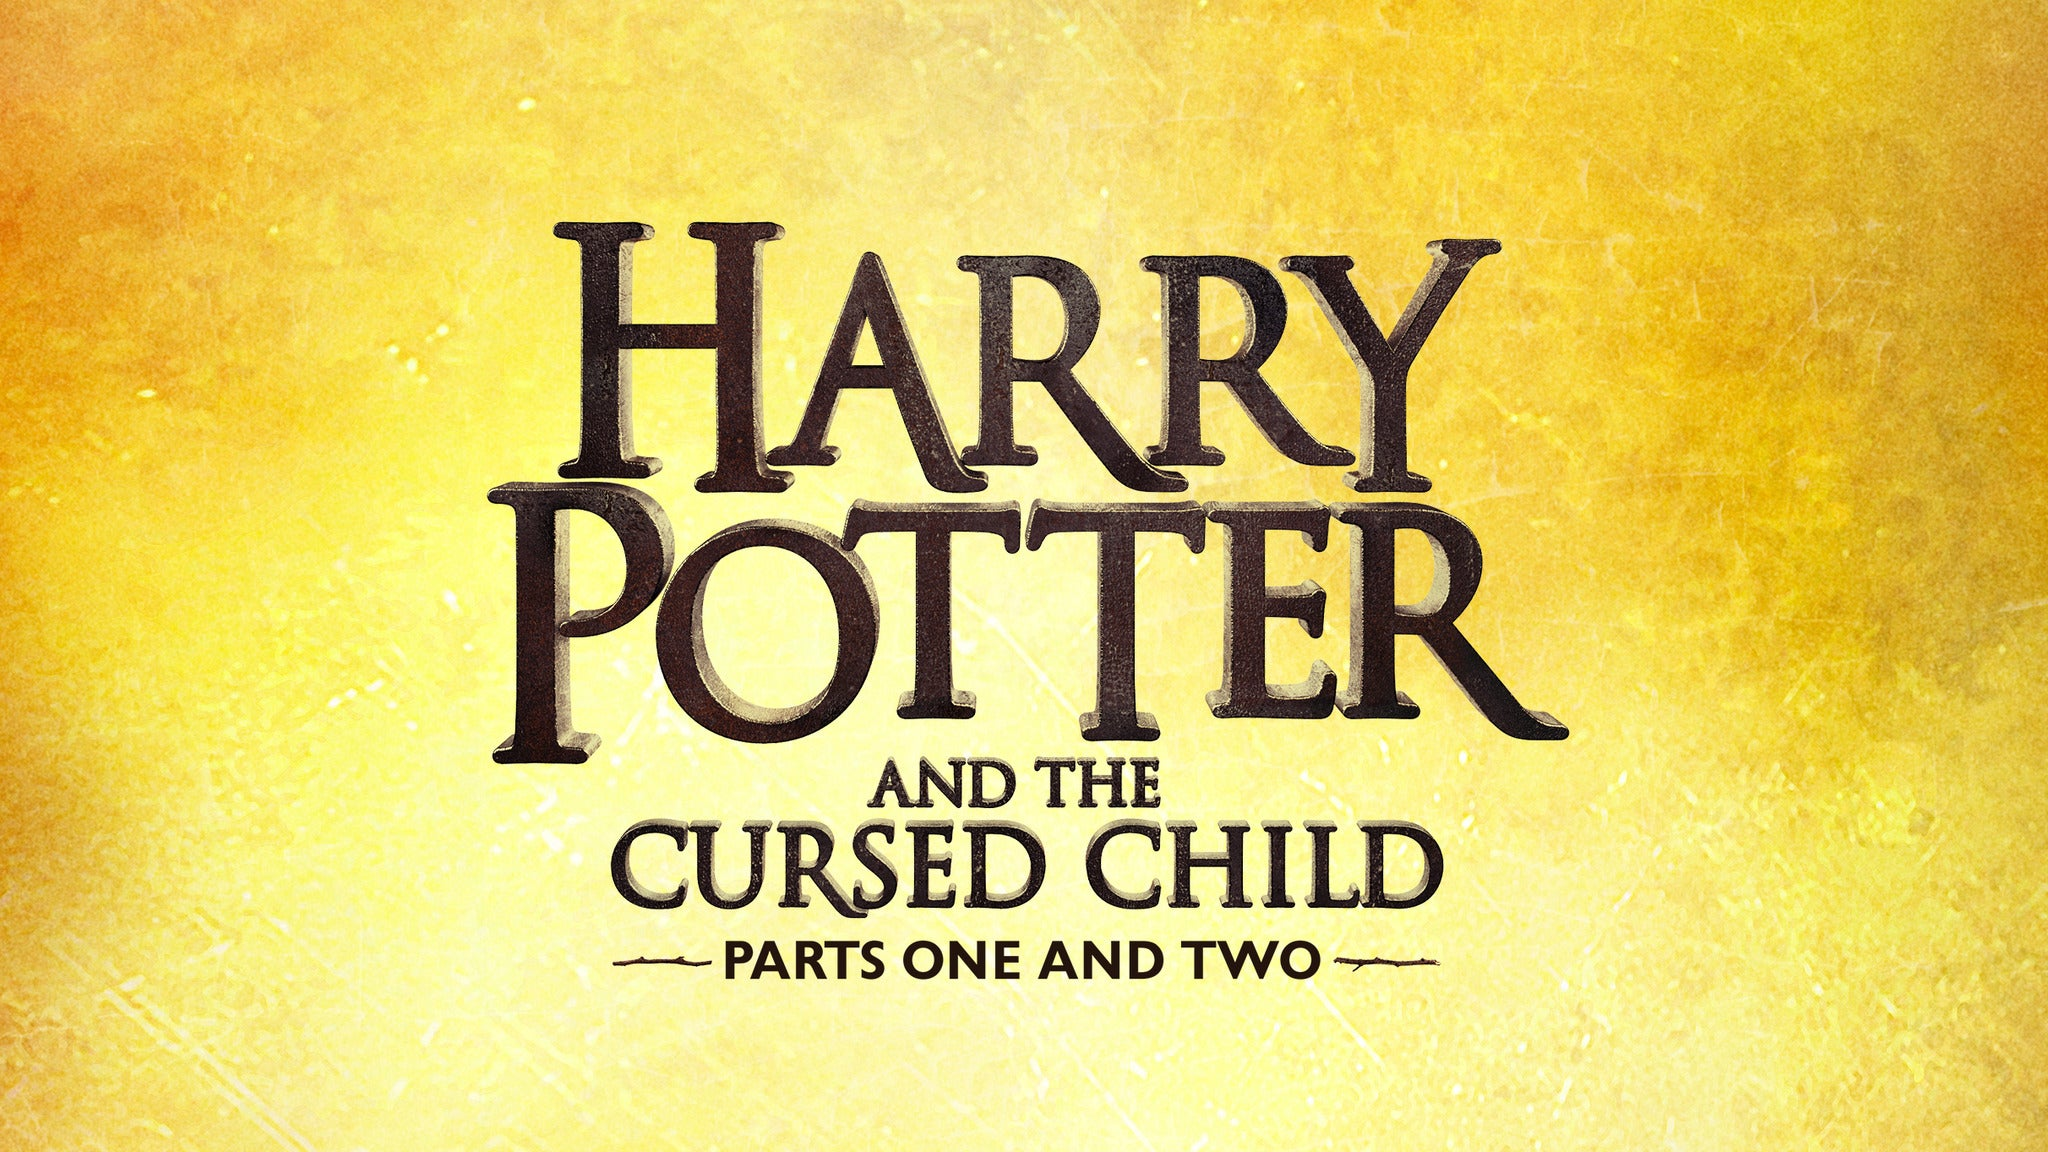 Harry Potter and the Cursed Child - Parts 1 & 2 Sun 13:00 & 18:30